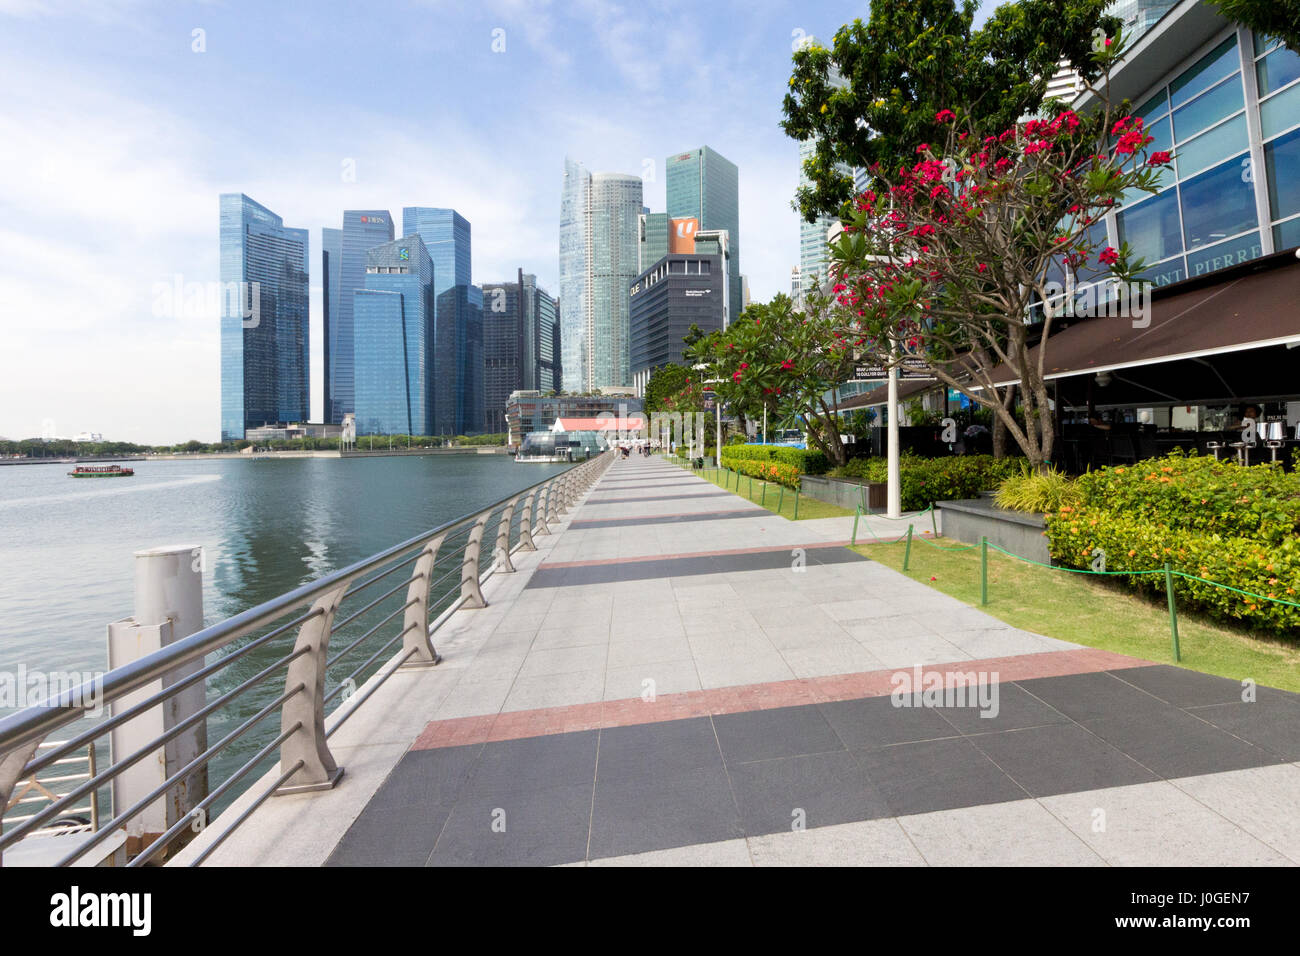 View along the promenad by the side of One Fullerton on COllyer Quay, Singapore - Stock Image